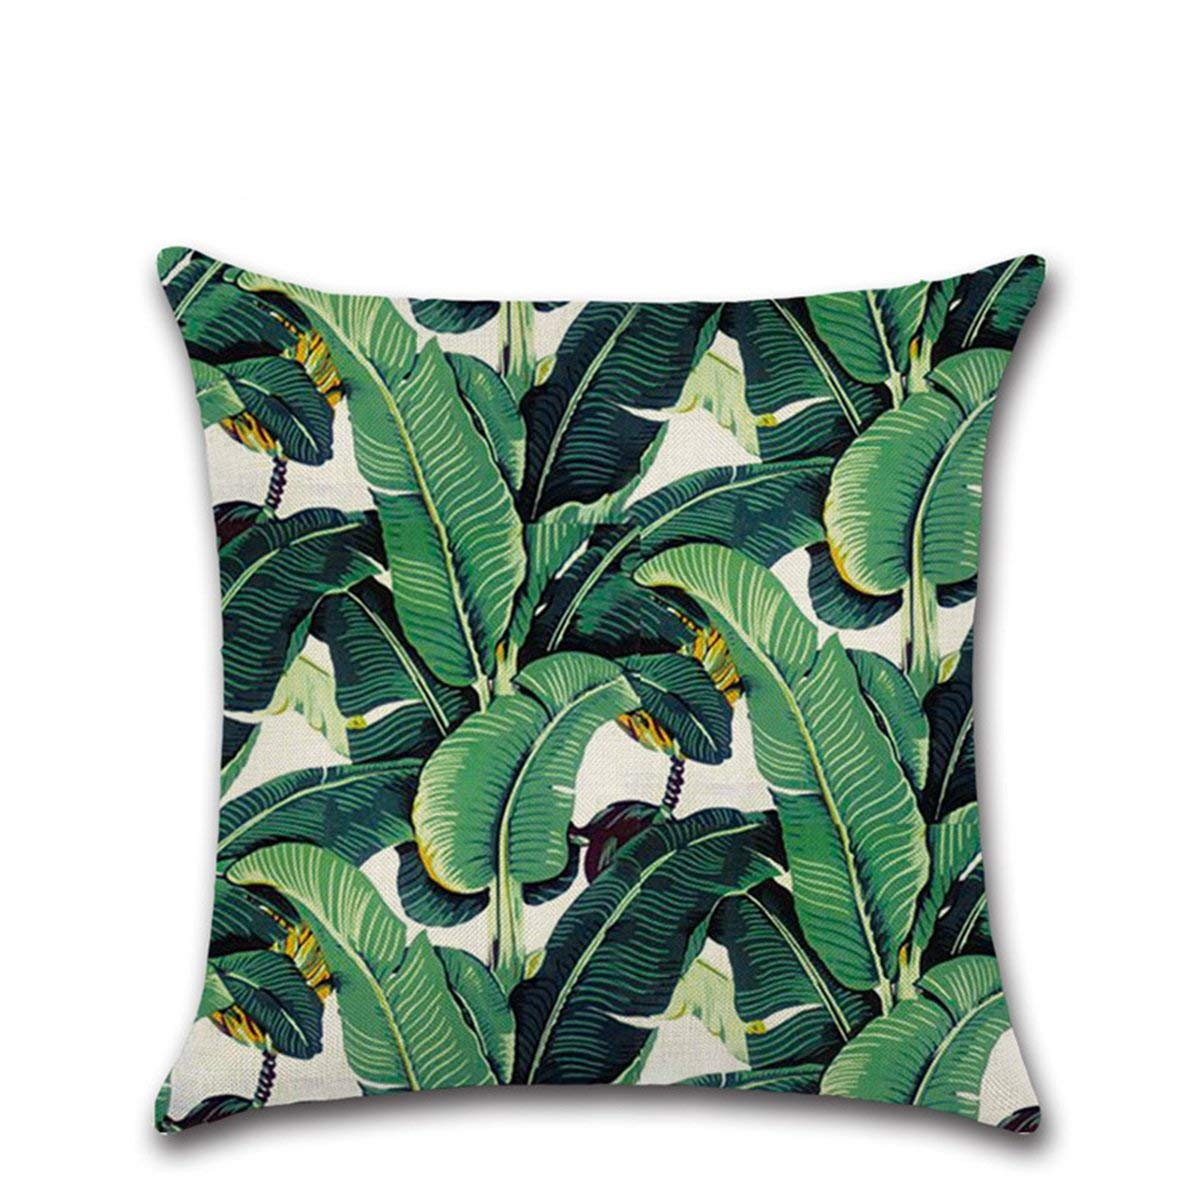 Martinad Einfache Blume Und Lassen Quadratisch Casual Chic Dekorativer /Überwurf Kissenbezug Sofa Home Office Decor Polyester 1 Green Leaf 45 X 45 cm Color : 1 Green Leaf, Size : Size